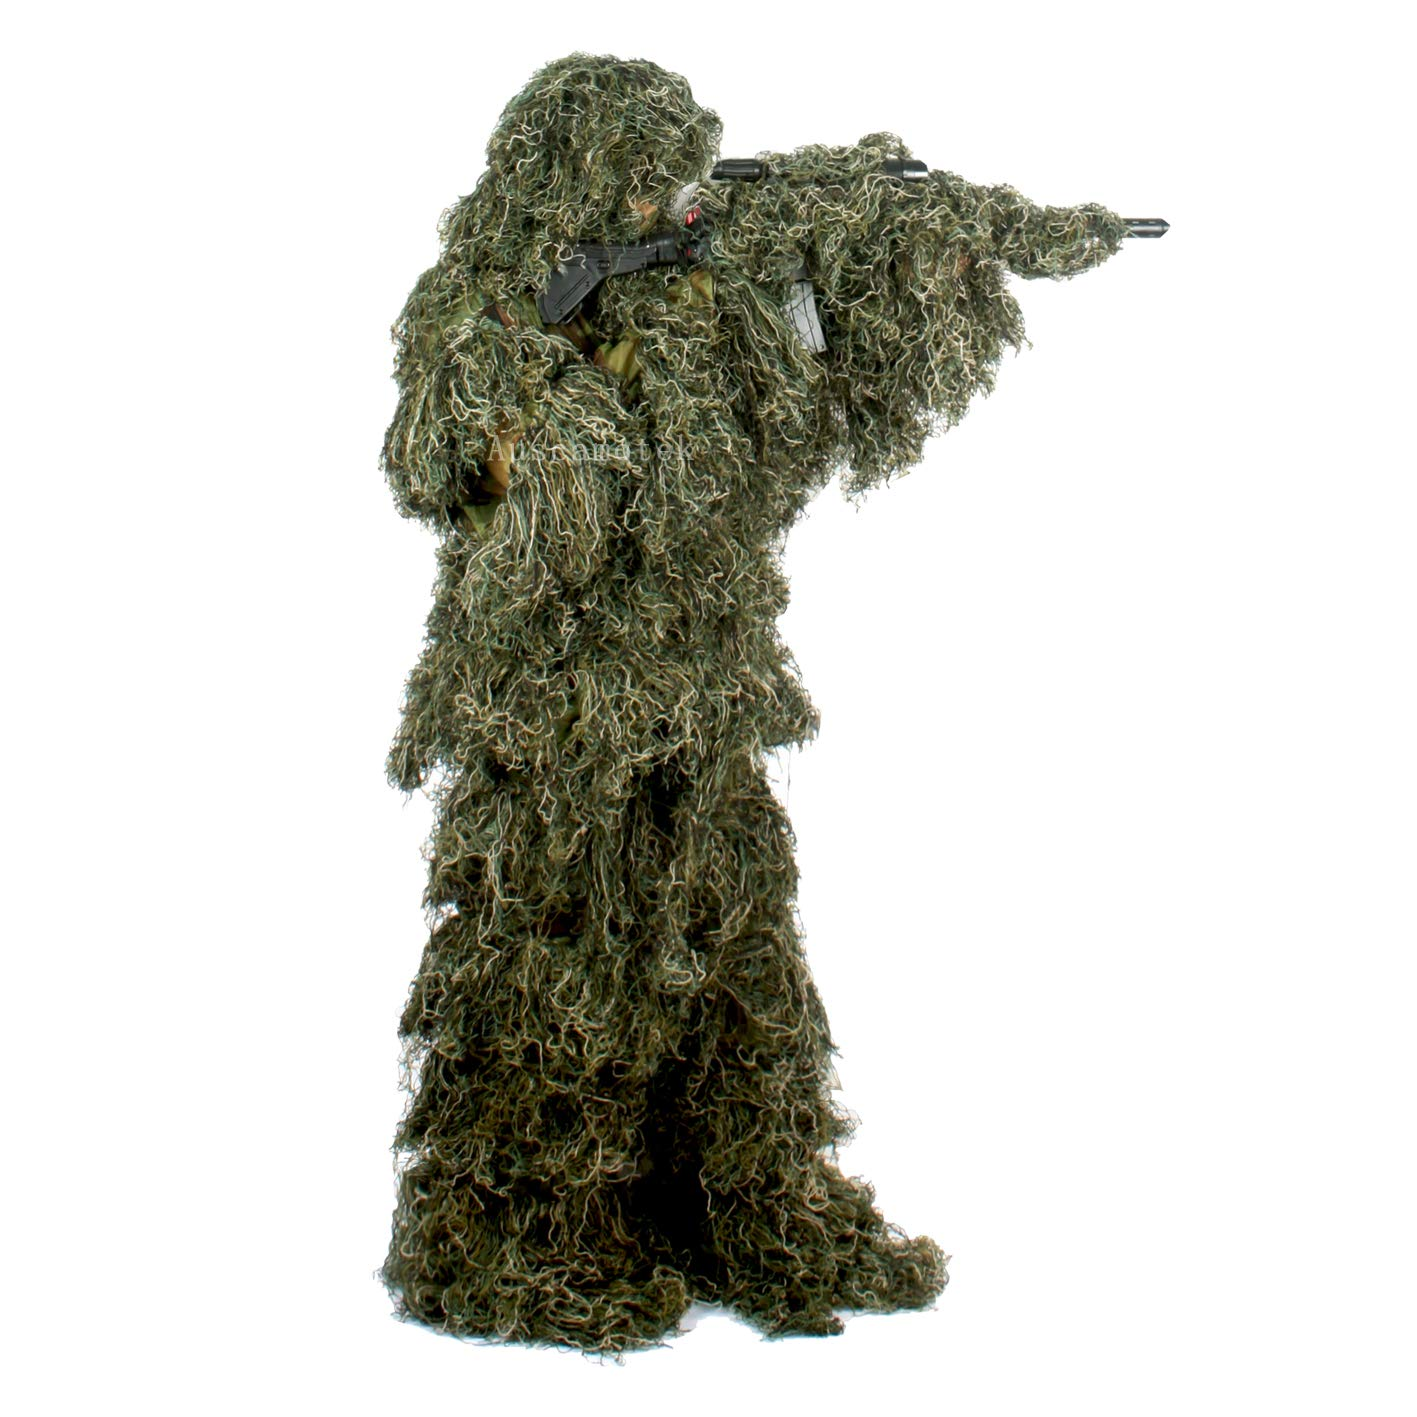 Auscamotek Gilly Suit for Men Ghillie Suit for Hunting XL XXL Green Hood Rifle Wrap Included by Auscamotek